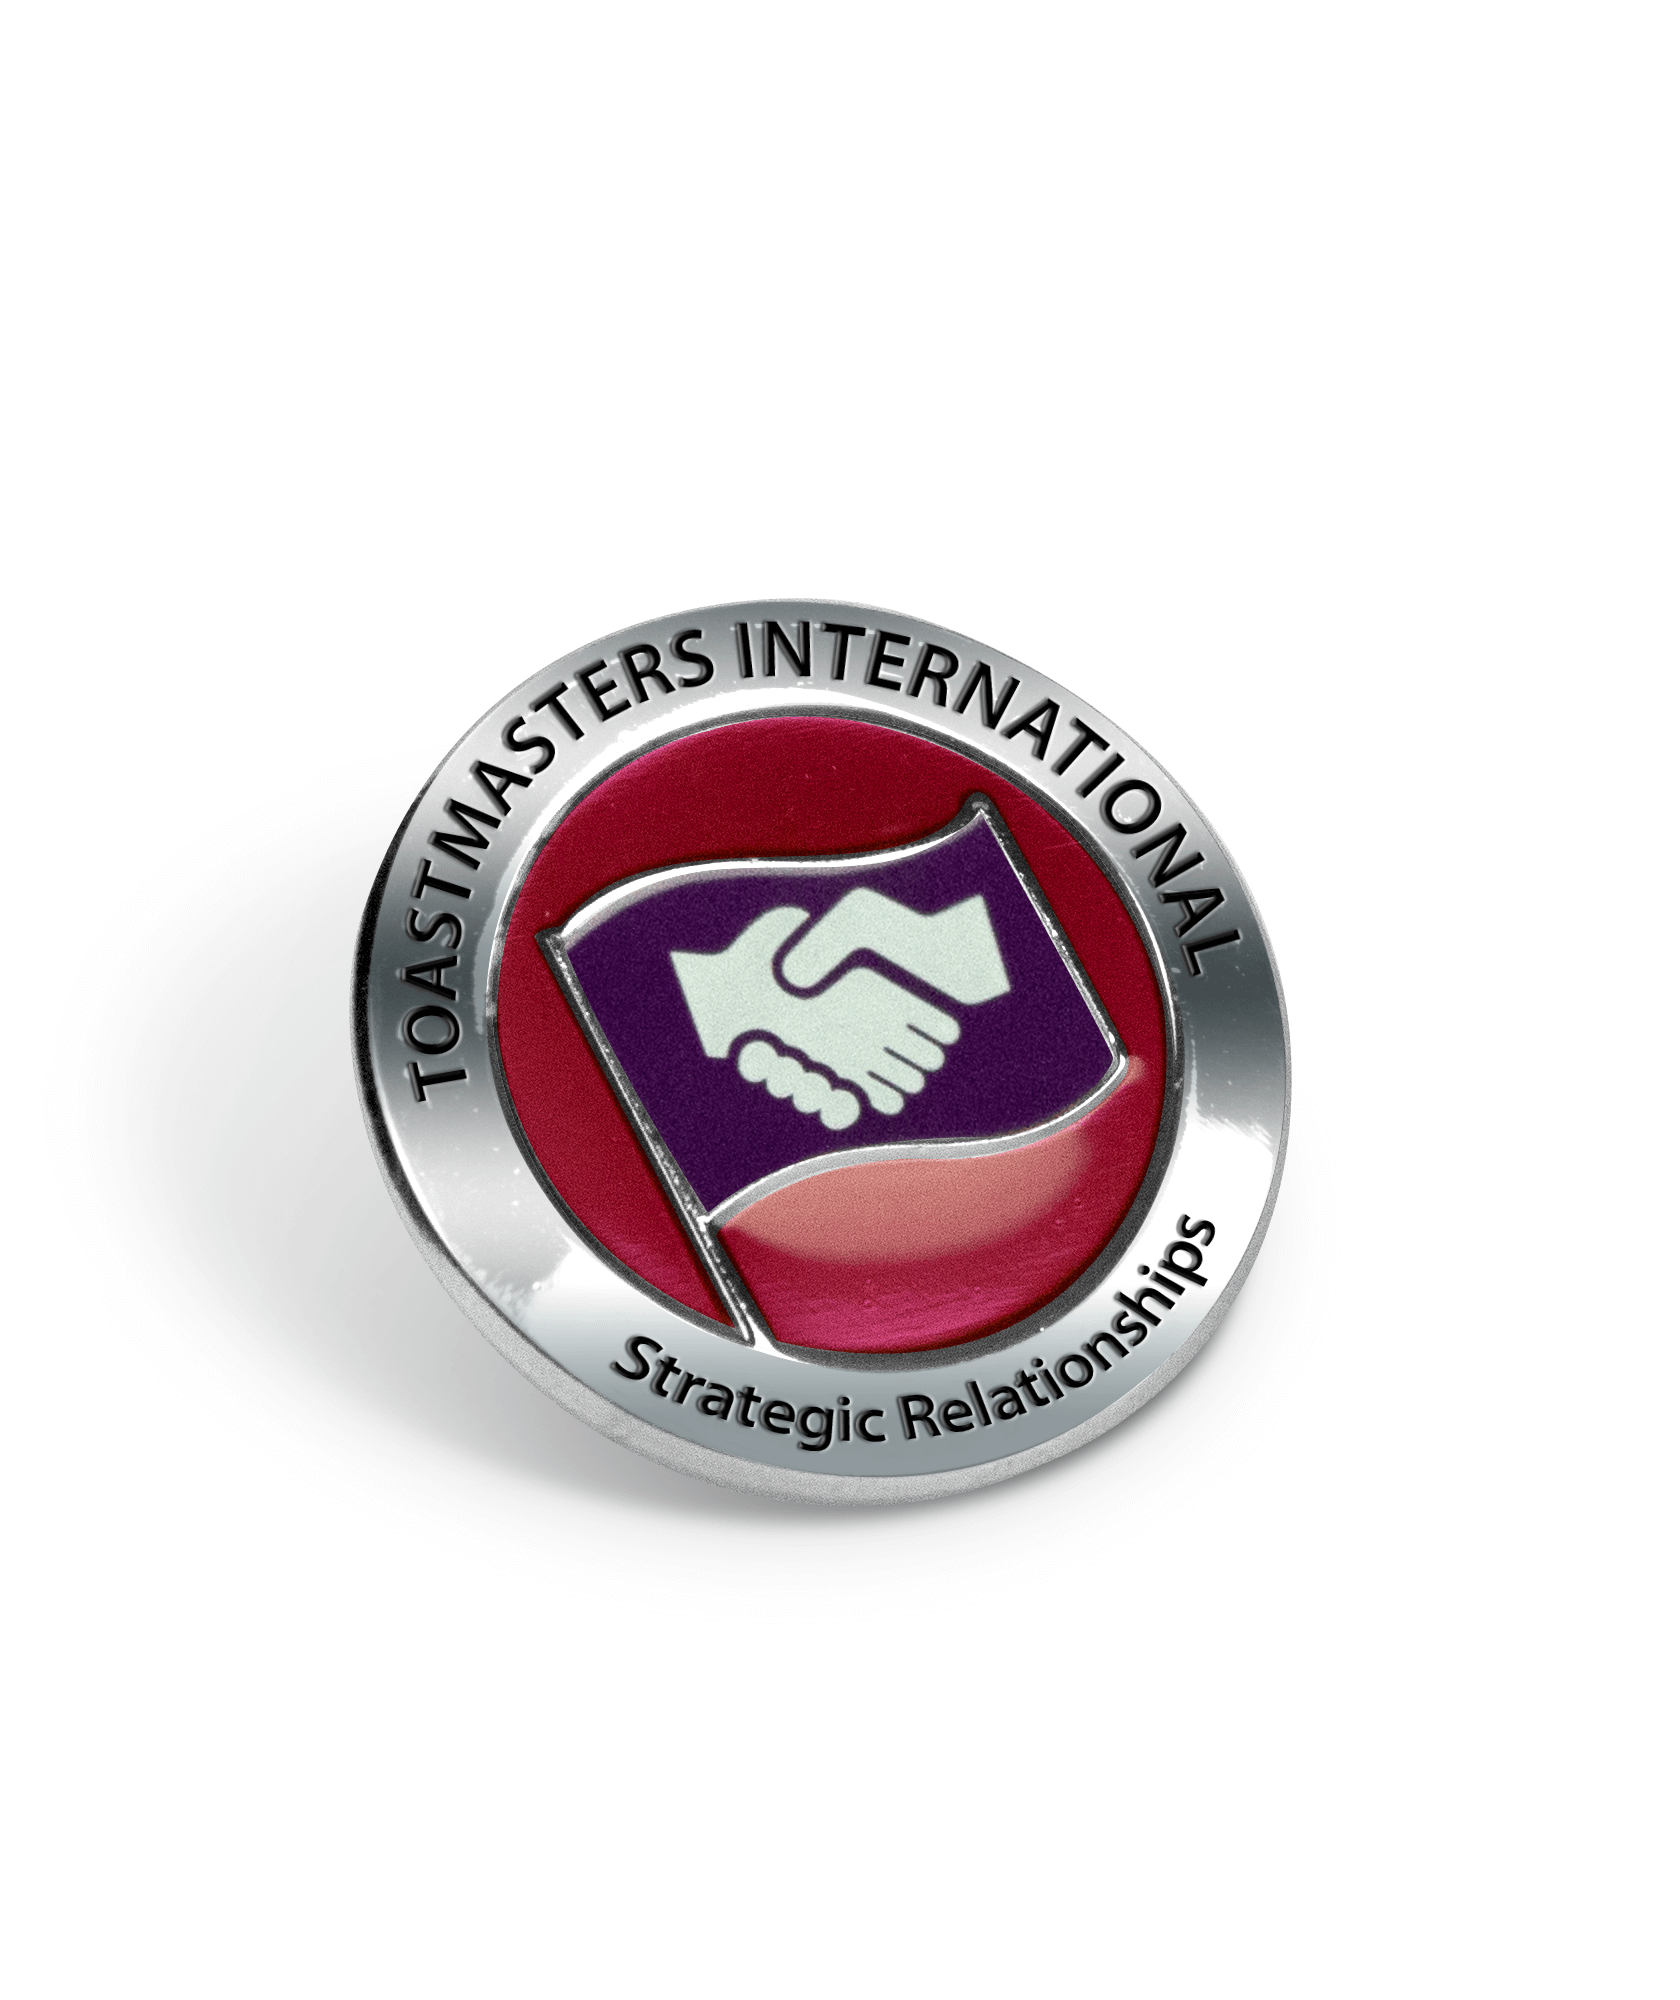 Polished silver pin with Toastmasters International and Strategic Relationships engraved on outside ring - features Strategic Relationship path logo in center